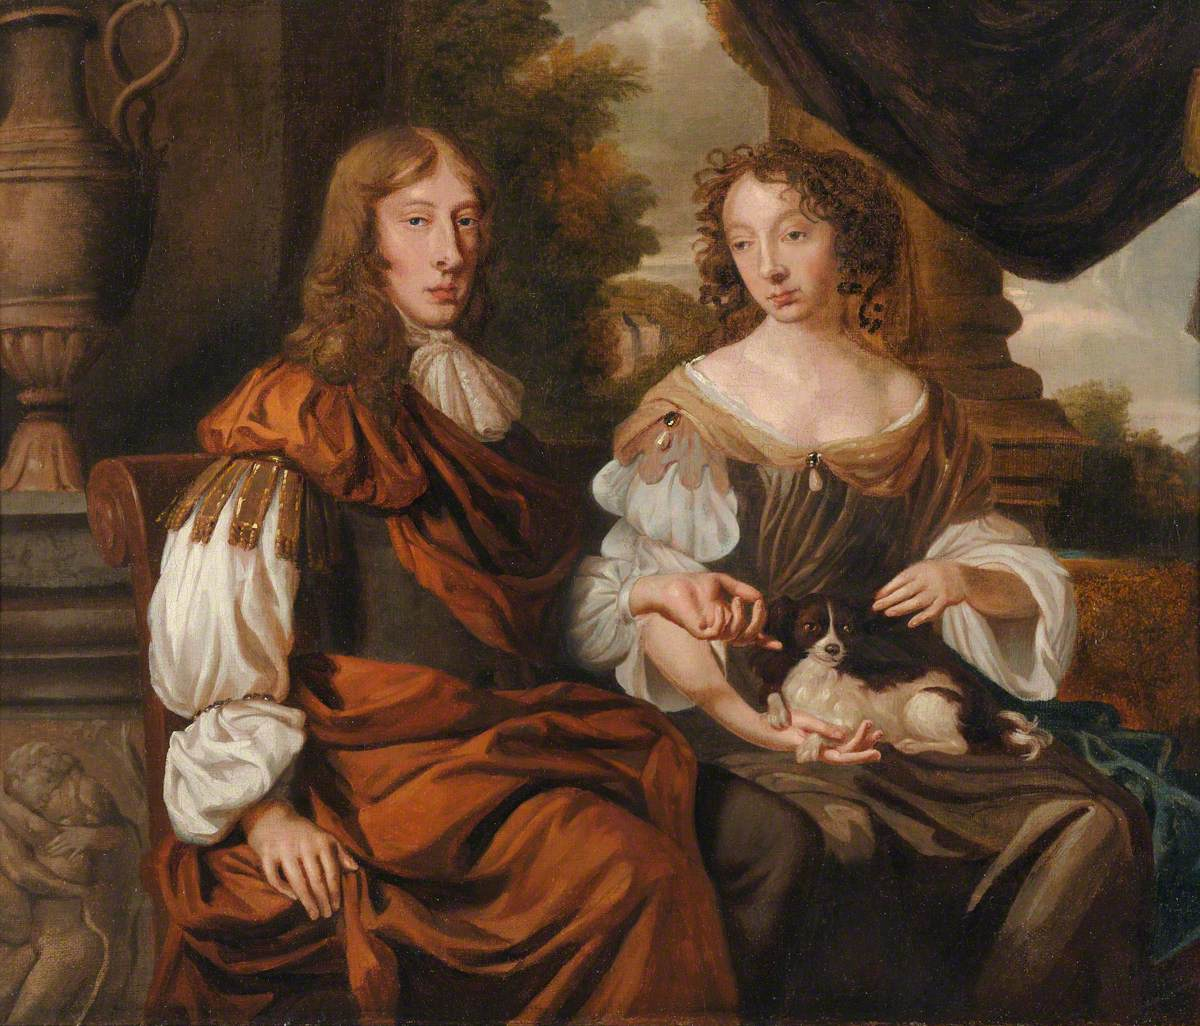 Thomas Fanshawe (1628–1705), with His Second Wife, Elizabeth (1641–1729)